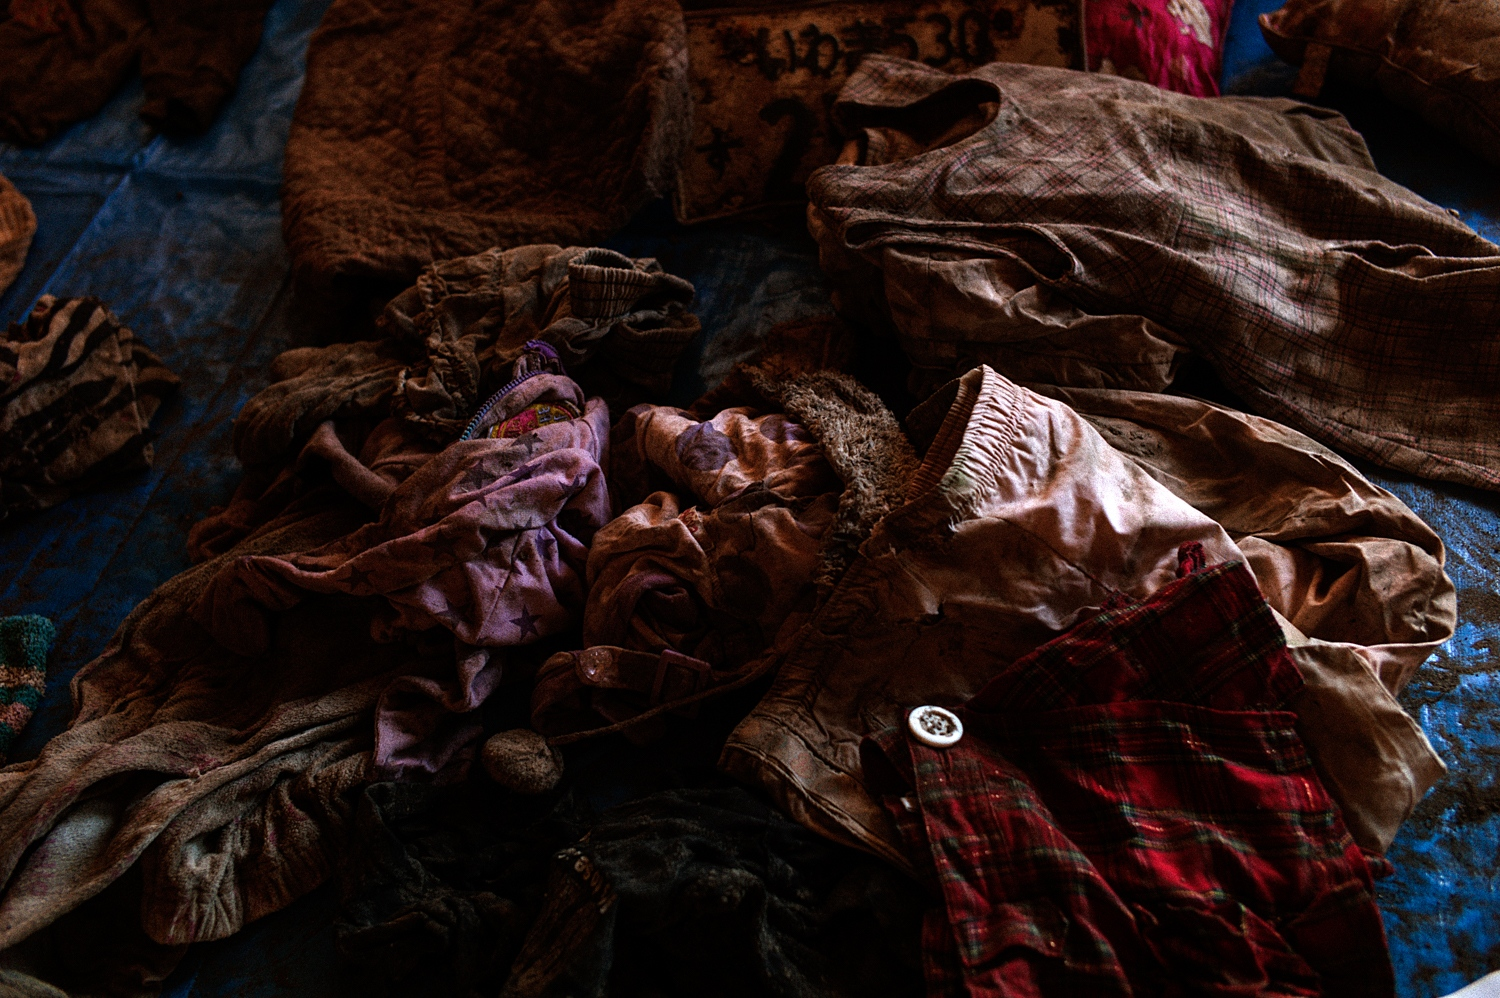 Cllothes belong to Yuna Kimura(age 7 at the time), whom swept away by tsunami on March 11, 2011. Only partial remain has been found as of August 2017.